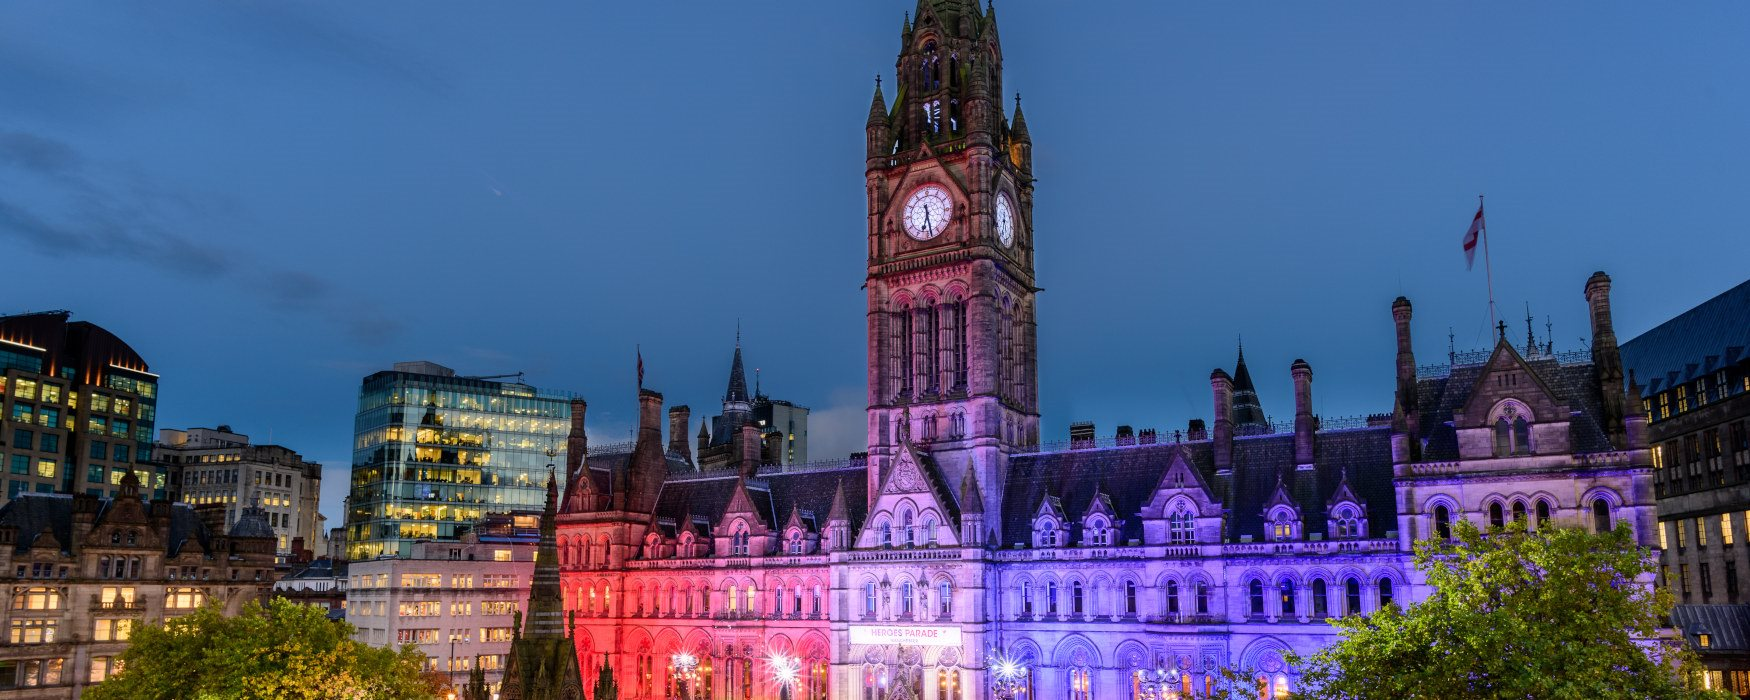 Manchester Town Hall lit up at night